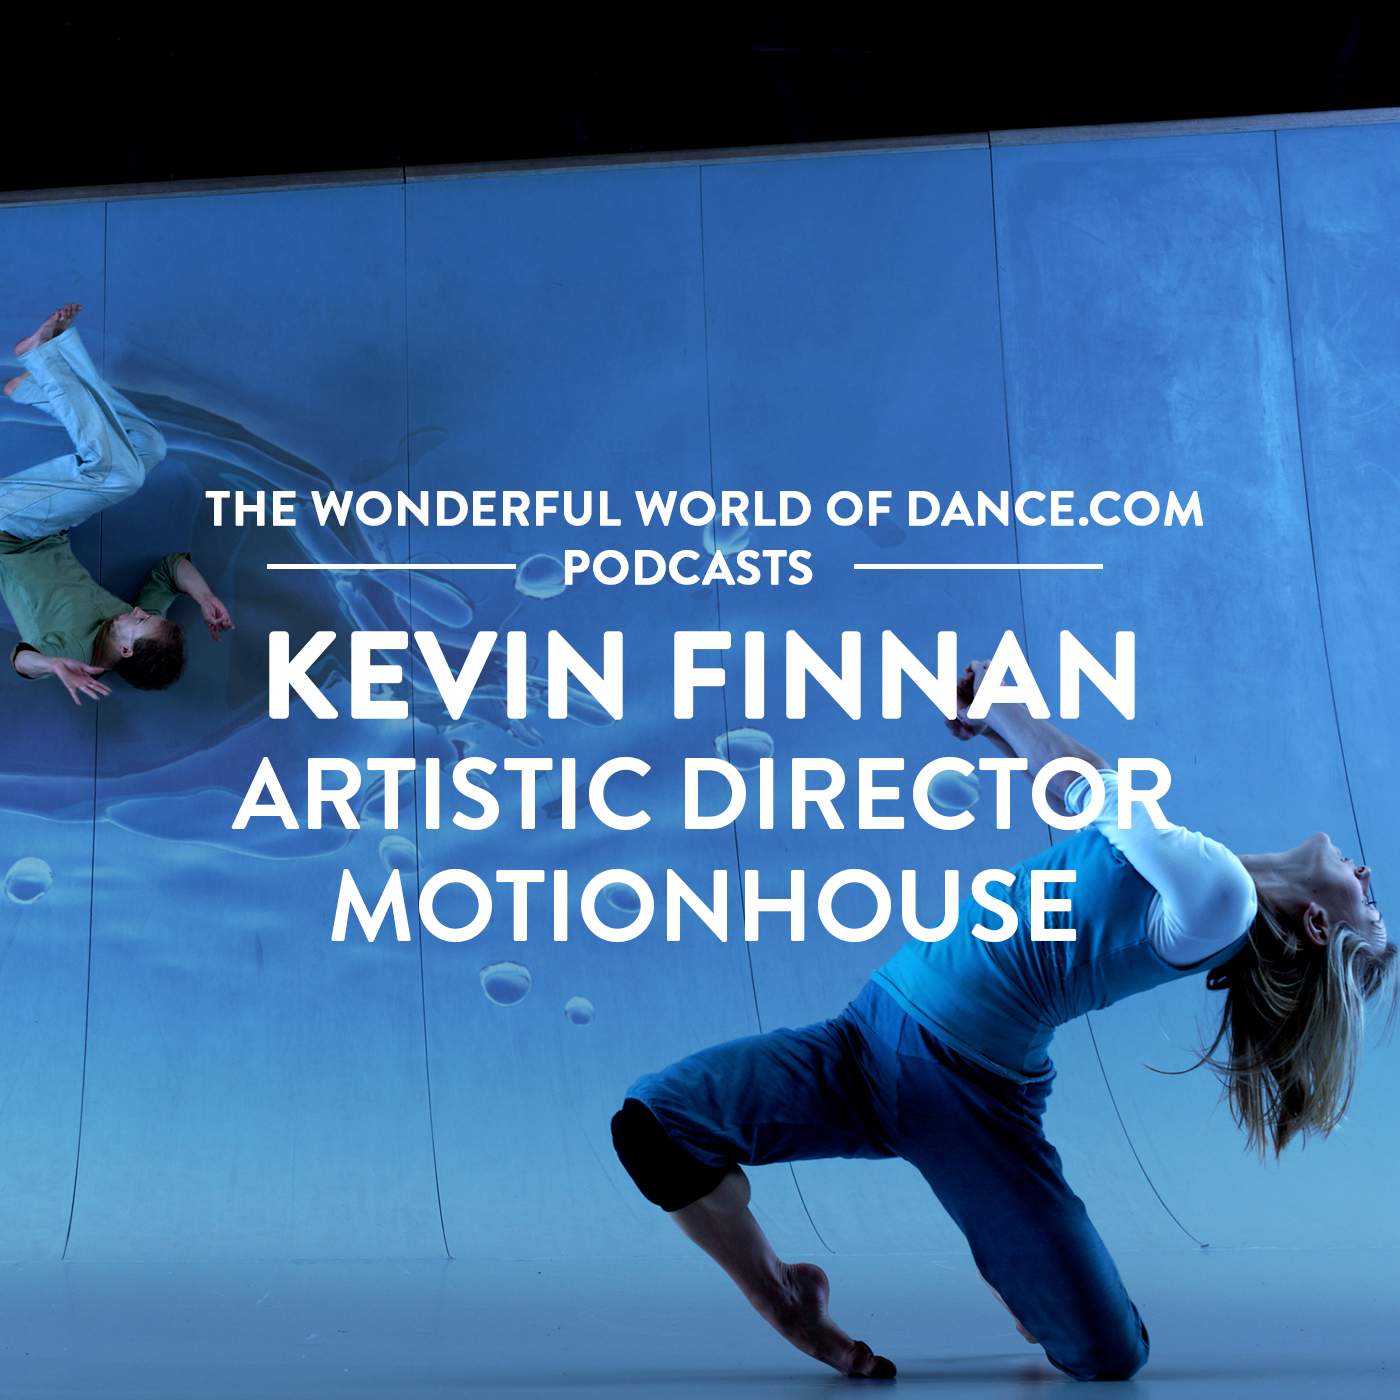 Kevin Finnan, Choreographer & Artistic Director Motionhouse